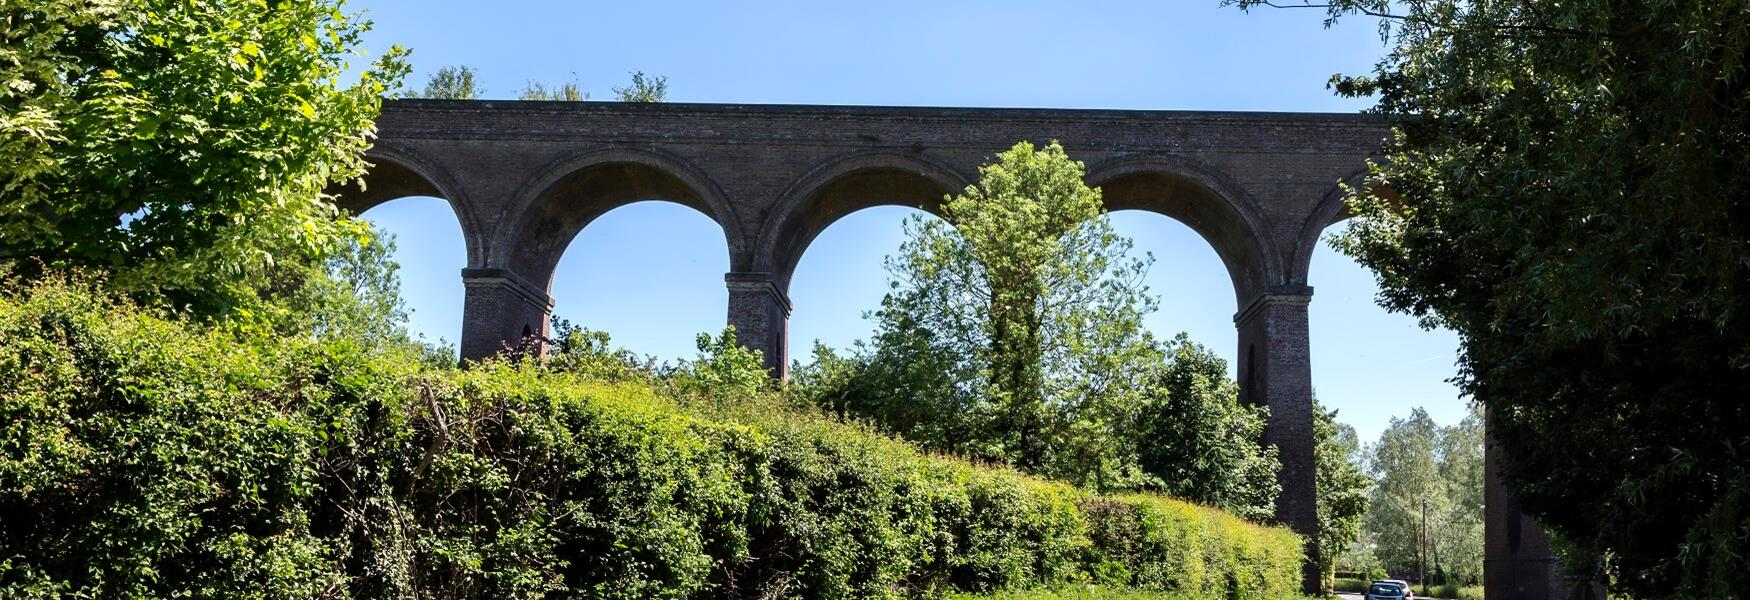 The Chappel Viaduct